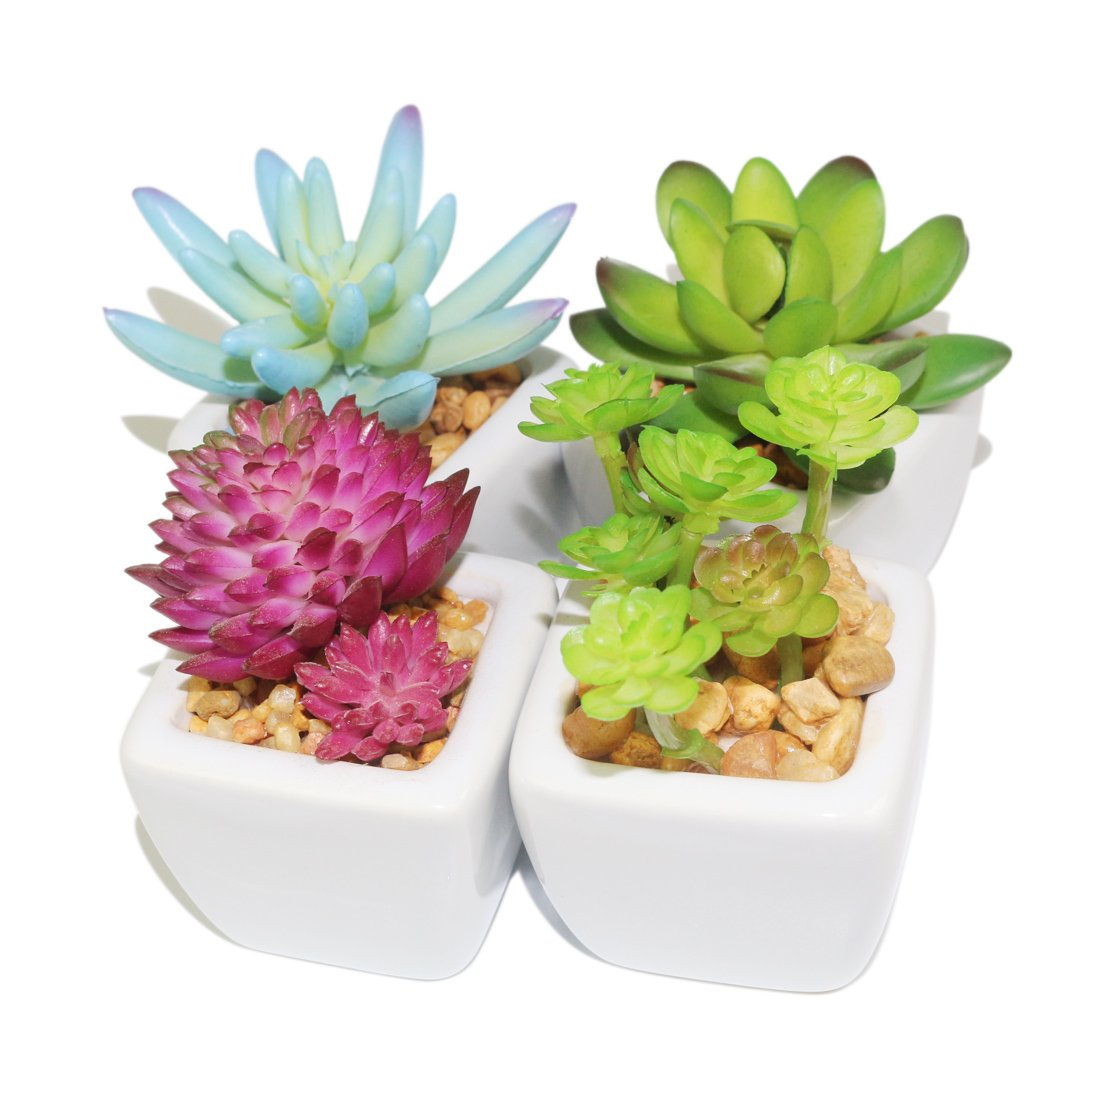 Myartte Home Decor-Set of 4 small Cube-Shaped Ceramic Pot with 4 different Artificial Succulent Plant for Home decoration Office decoration ASP-07060118